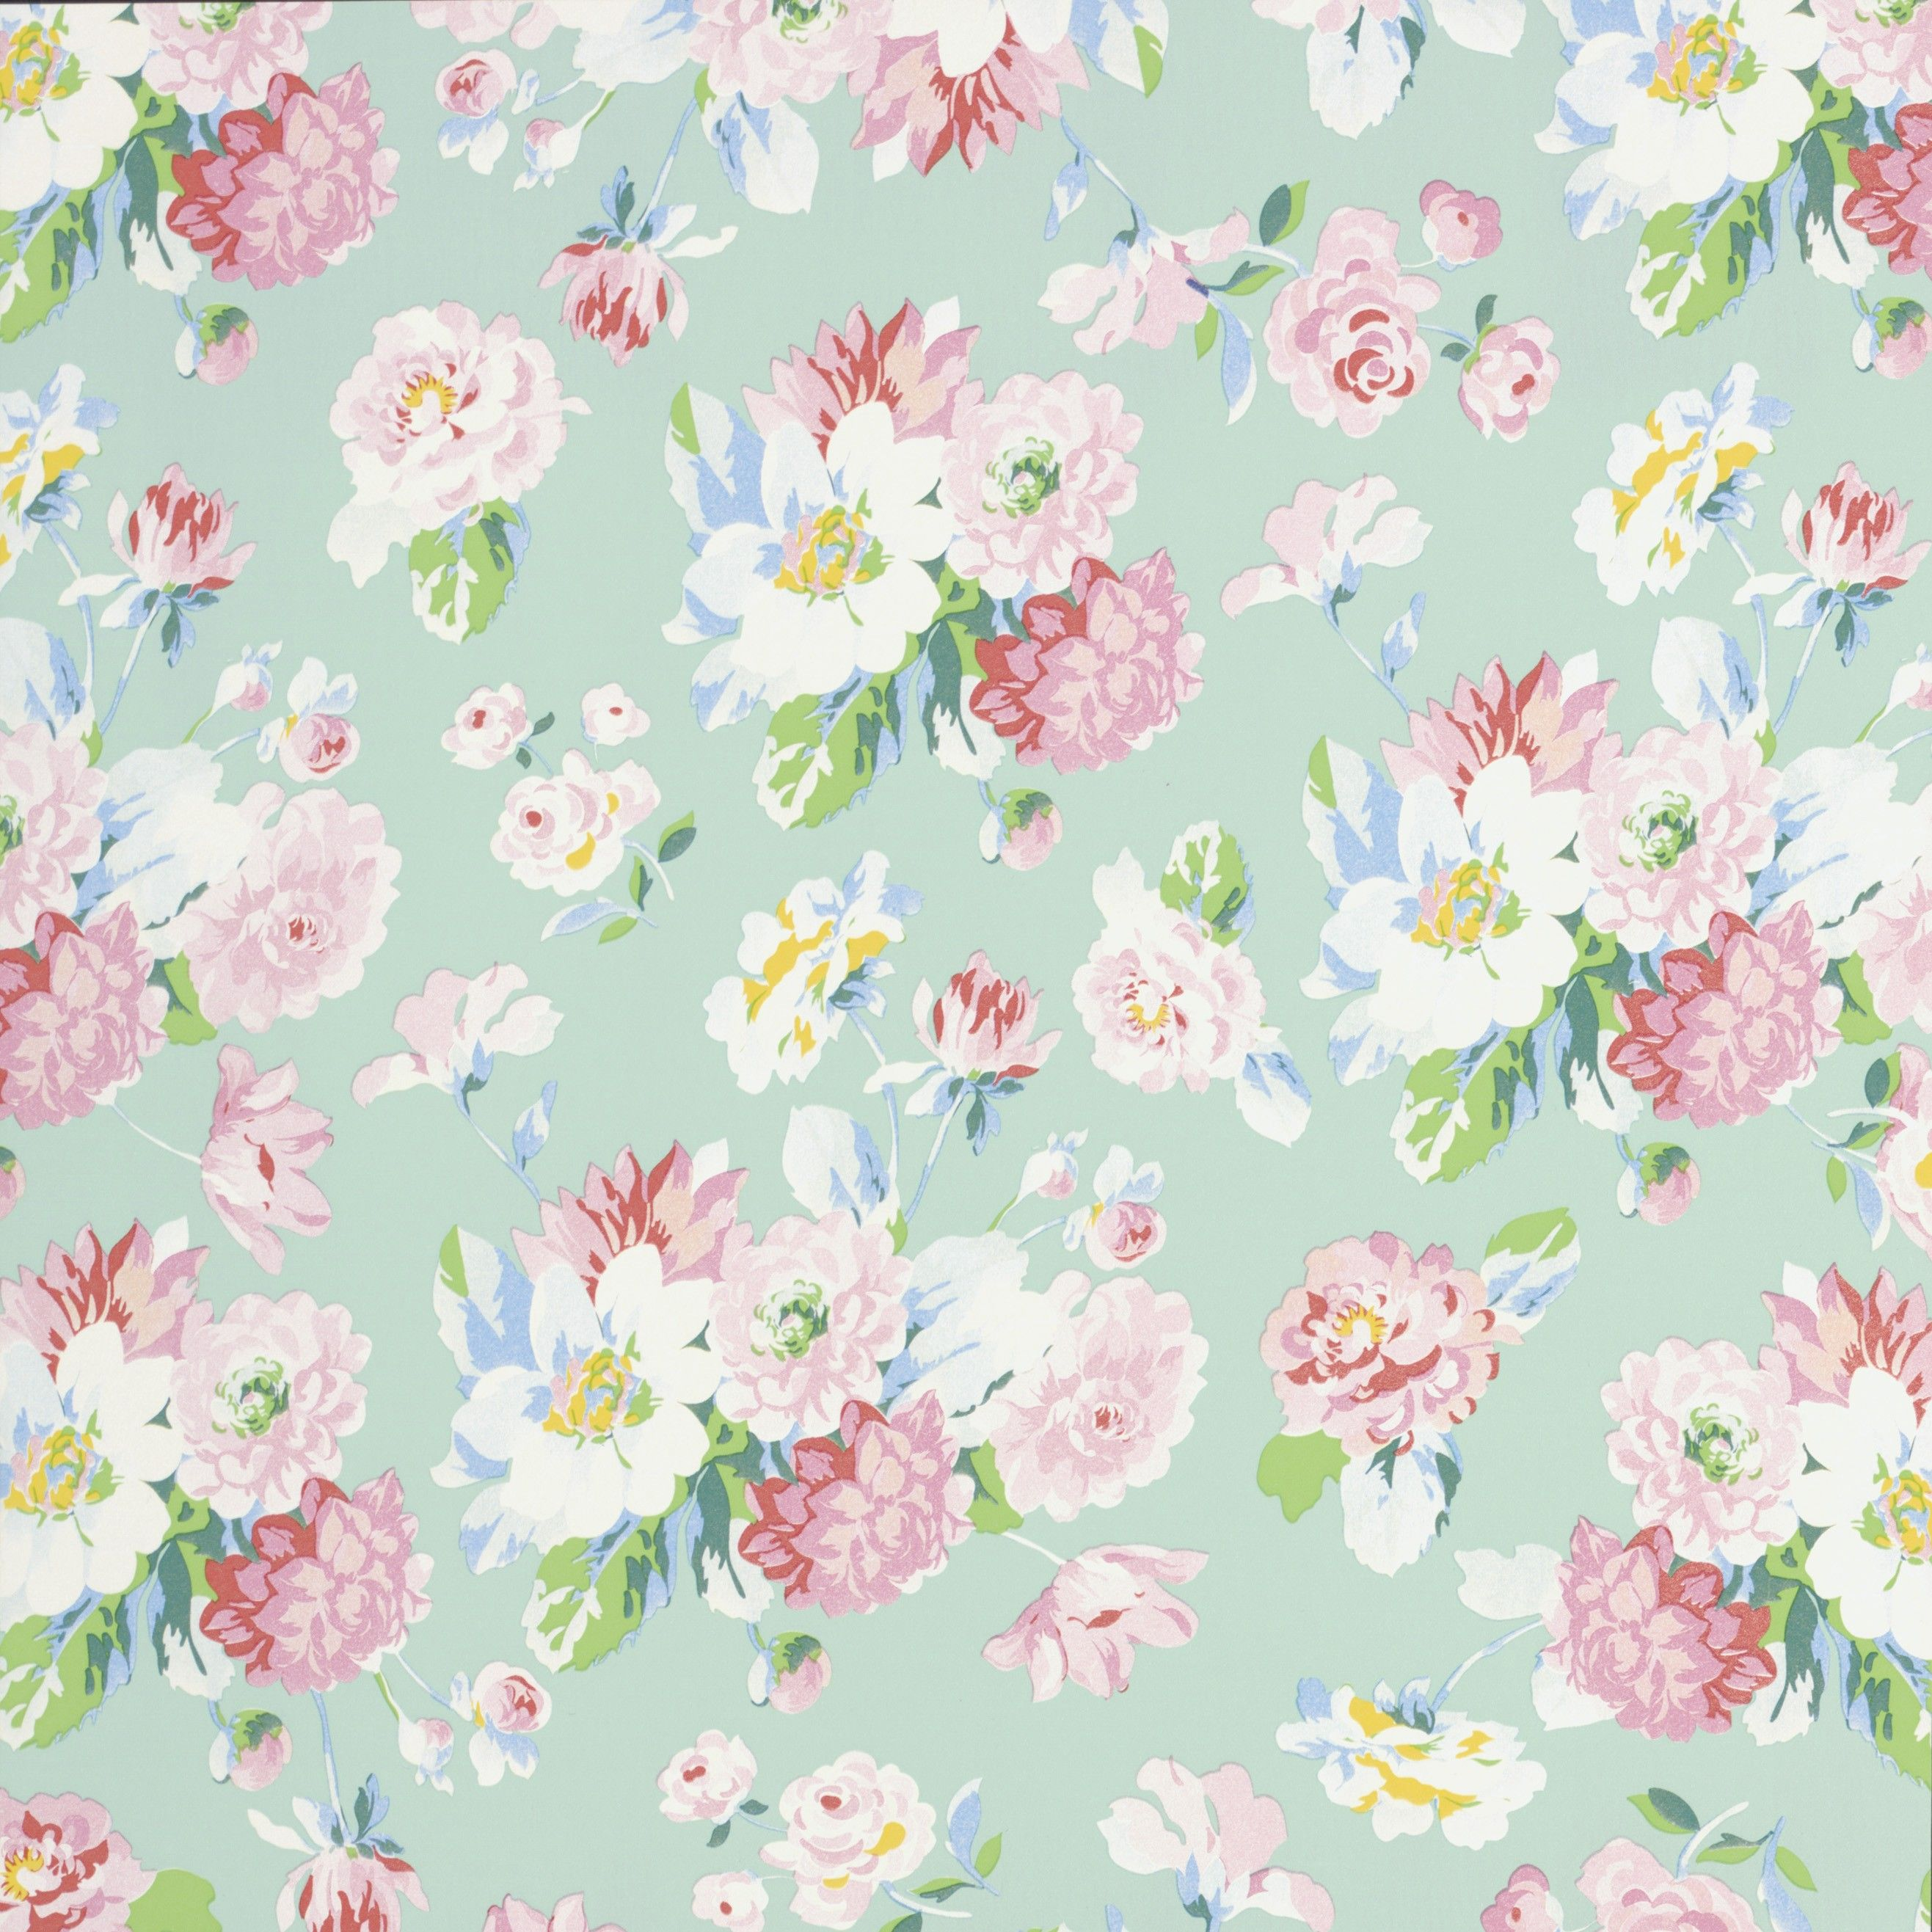 La Vie En Rose Mint Wallpaper 3900026 Iphone Wallpaper Green